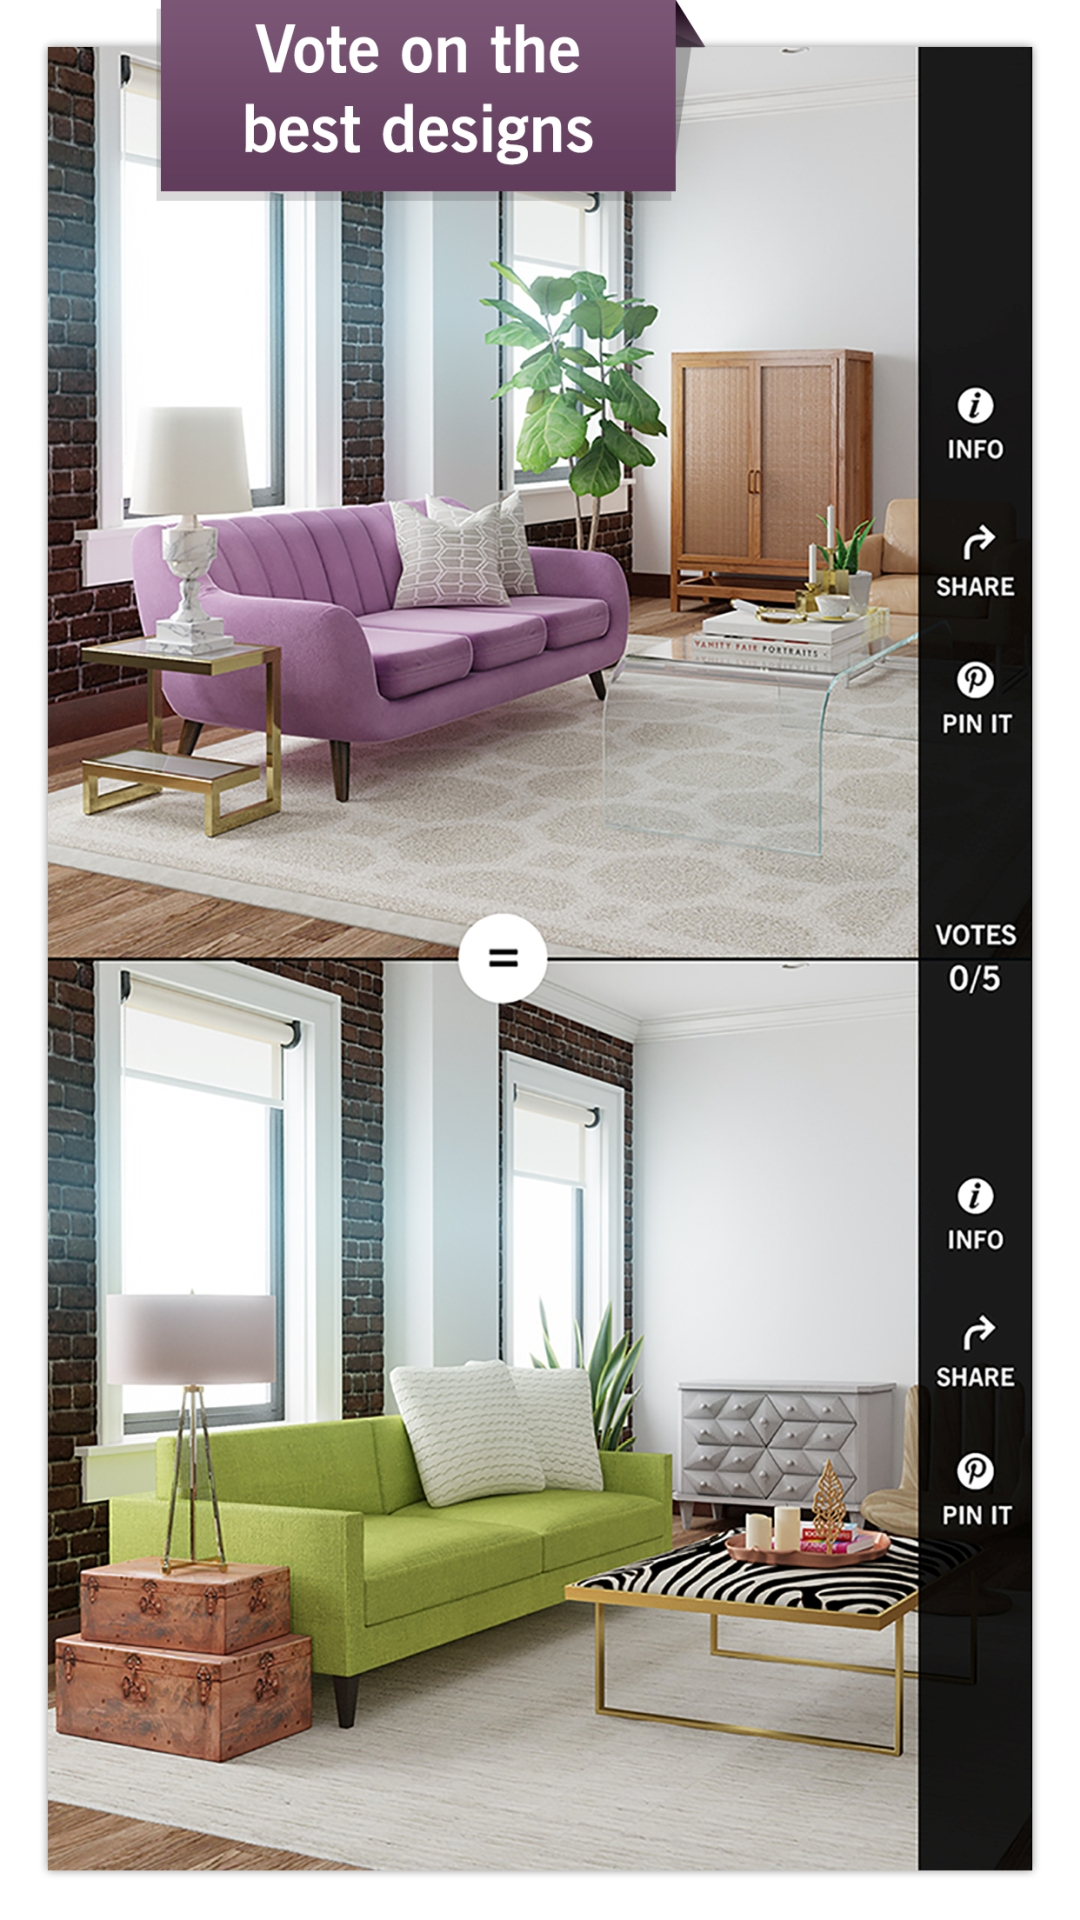 Design Home: Amazon.co.uk: Appstore for Android